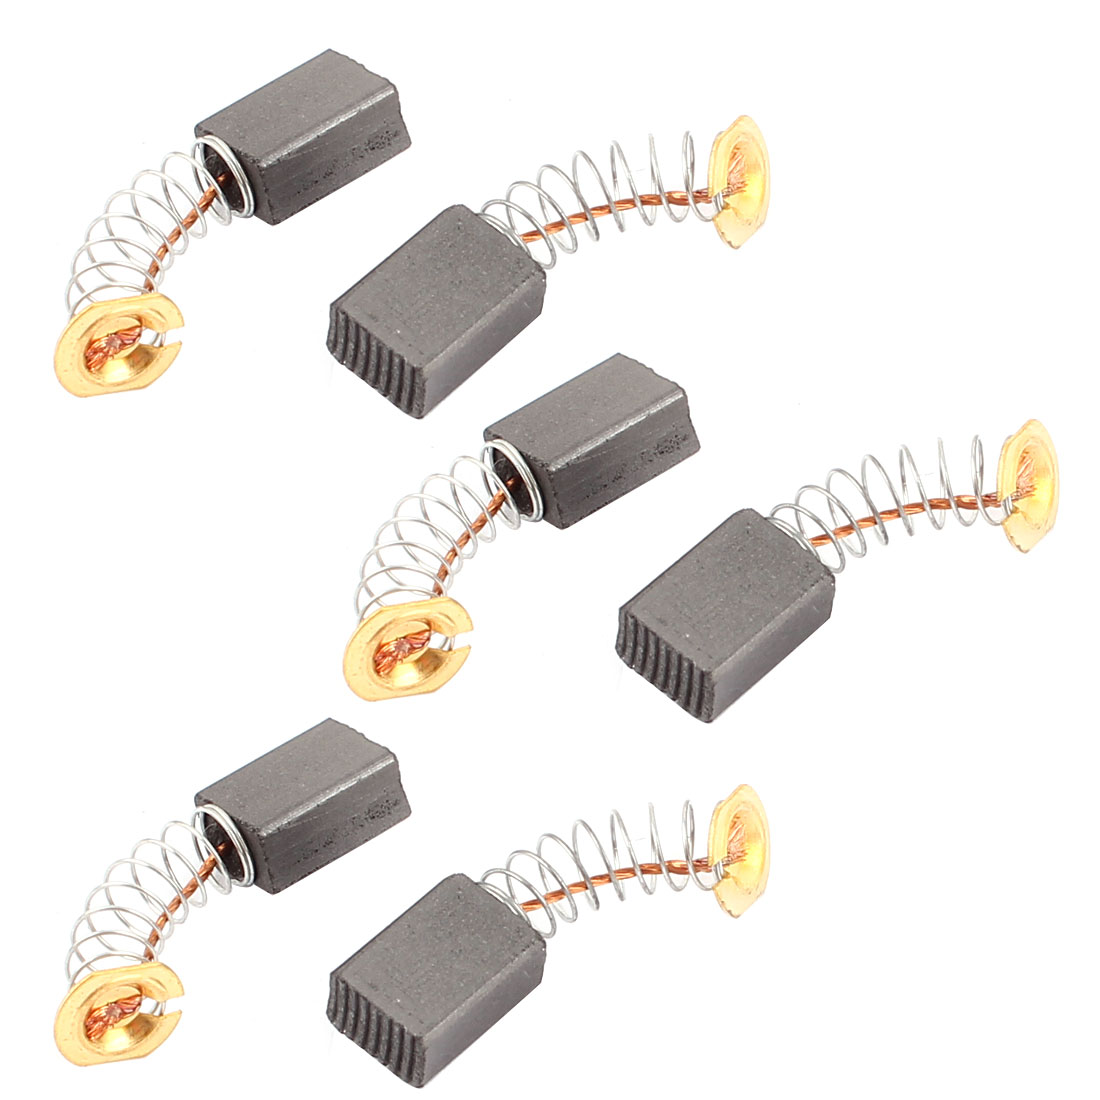 6 Pcs Replacement Electric Motor Carbon Brushes 12 x 9 x 6mm for Motors